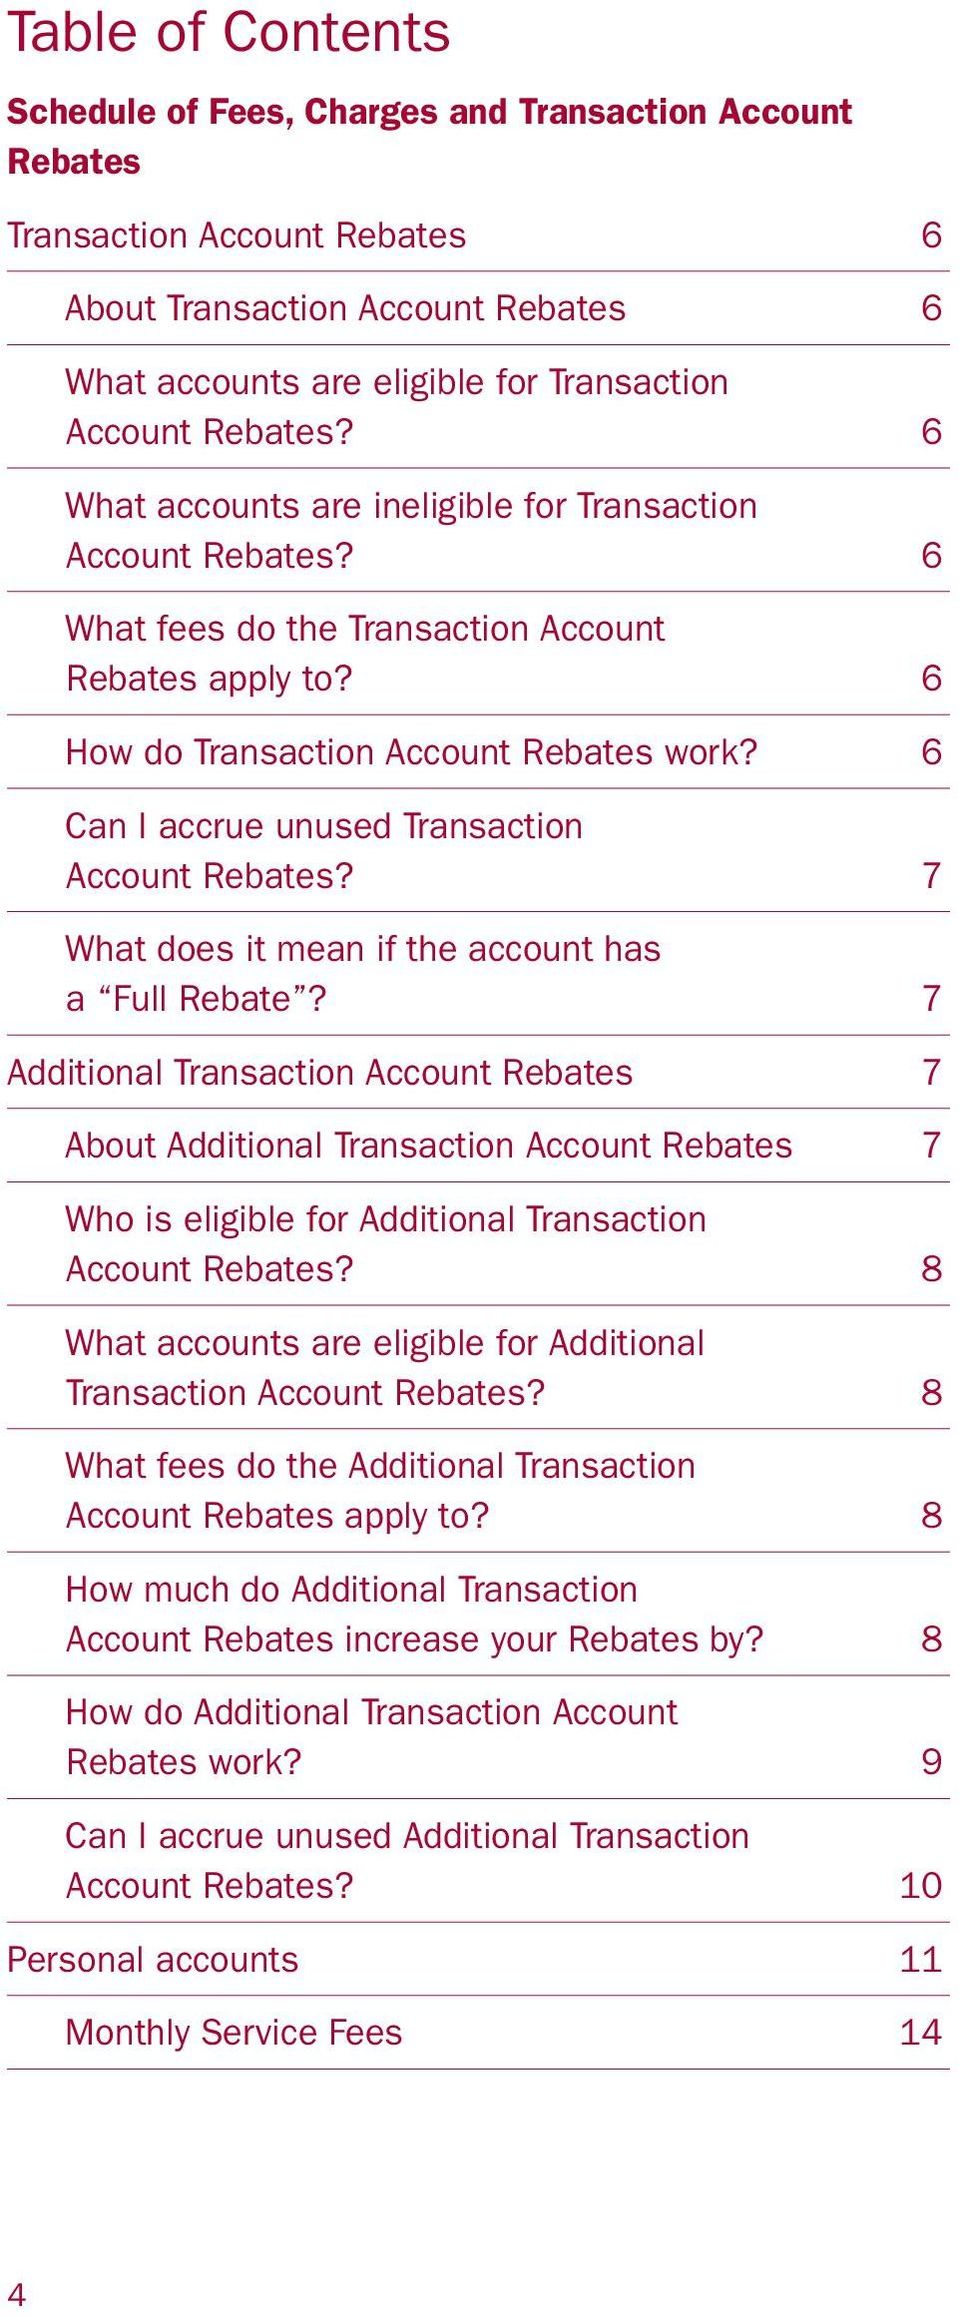 6 Can I accrue unused Transaction Account Rebates? 7 What does it mean if the account has a Full Rebate?